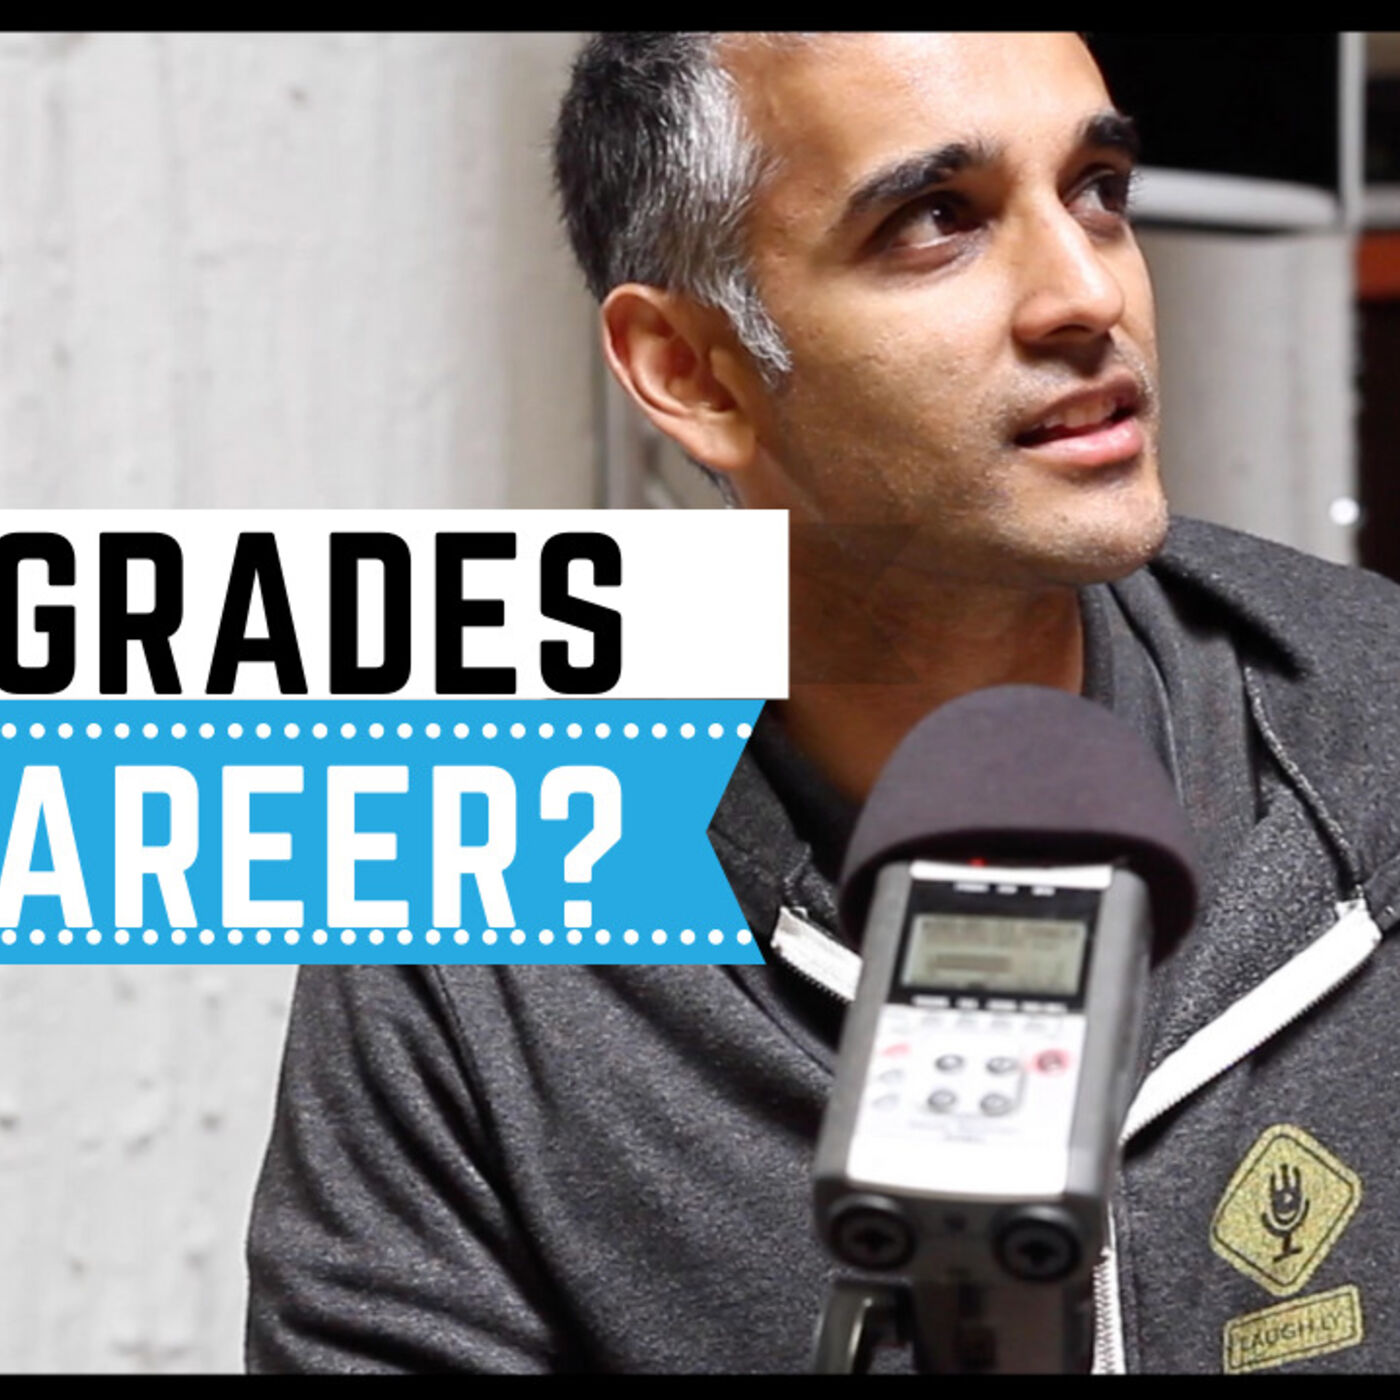 How To Get a Job When You Have Bad Grades